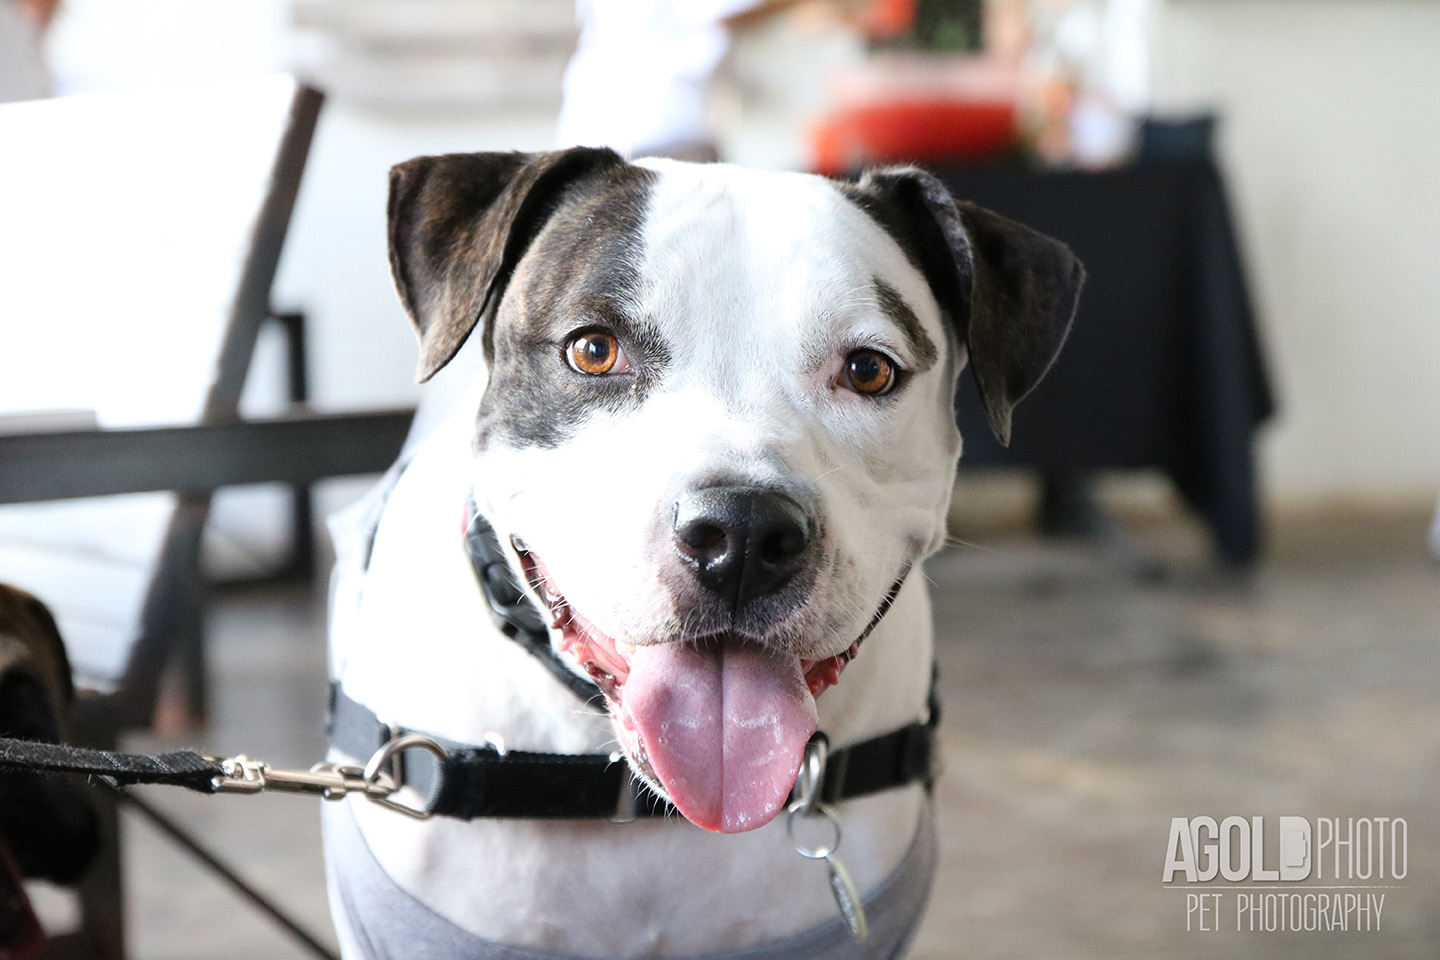 Seminole Heights Pup Crawl_AGoldPhoto Pet Photography_1